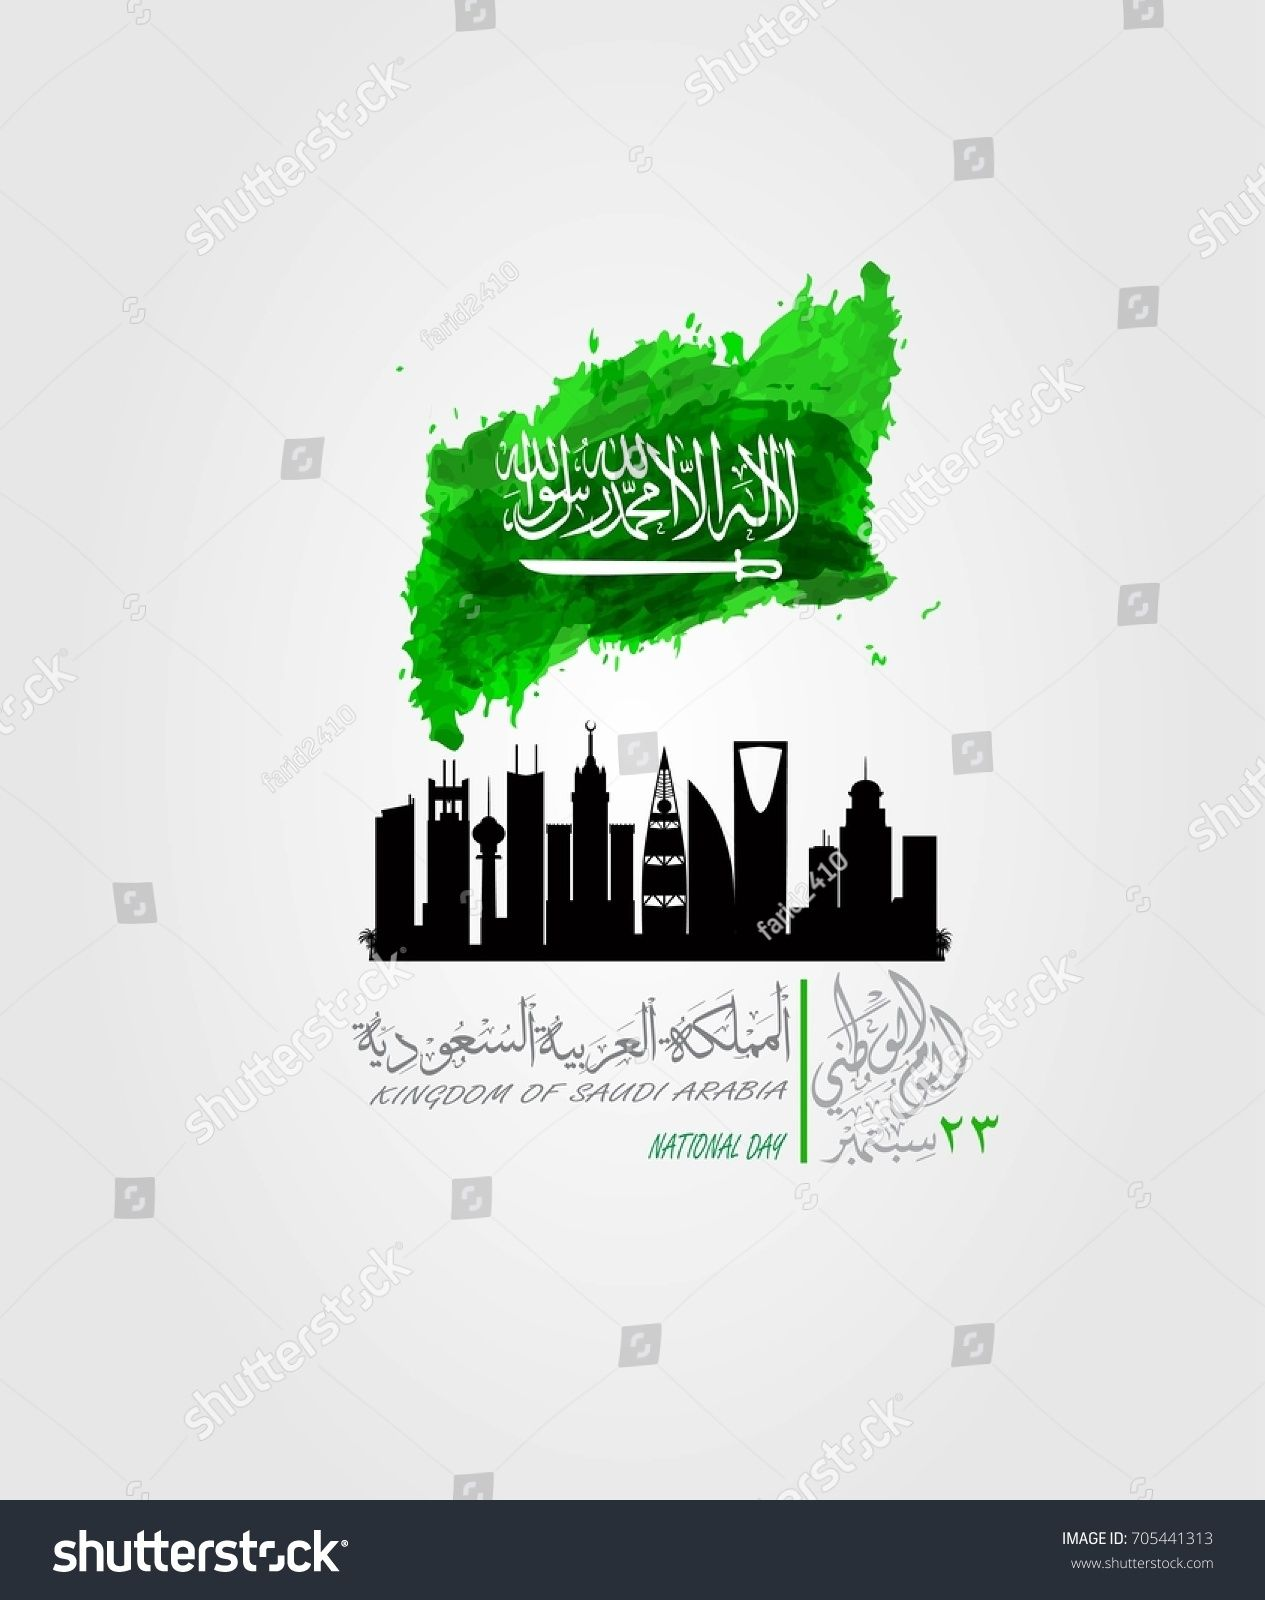 Vector Of National Day In Arabic Calligraphy Style With Saudi Arabia Flag 1 Sponsored Ad Day Arabic Vecto Saudi Arabia Flag Calligraphy Styles Saudi Flag